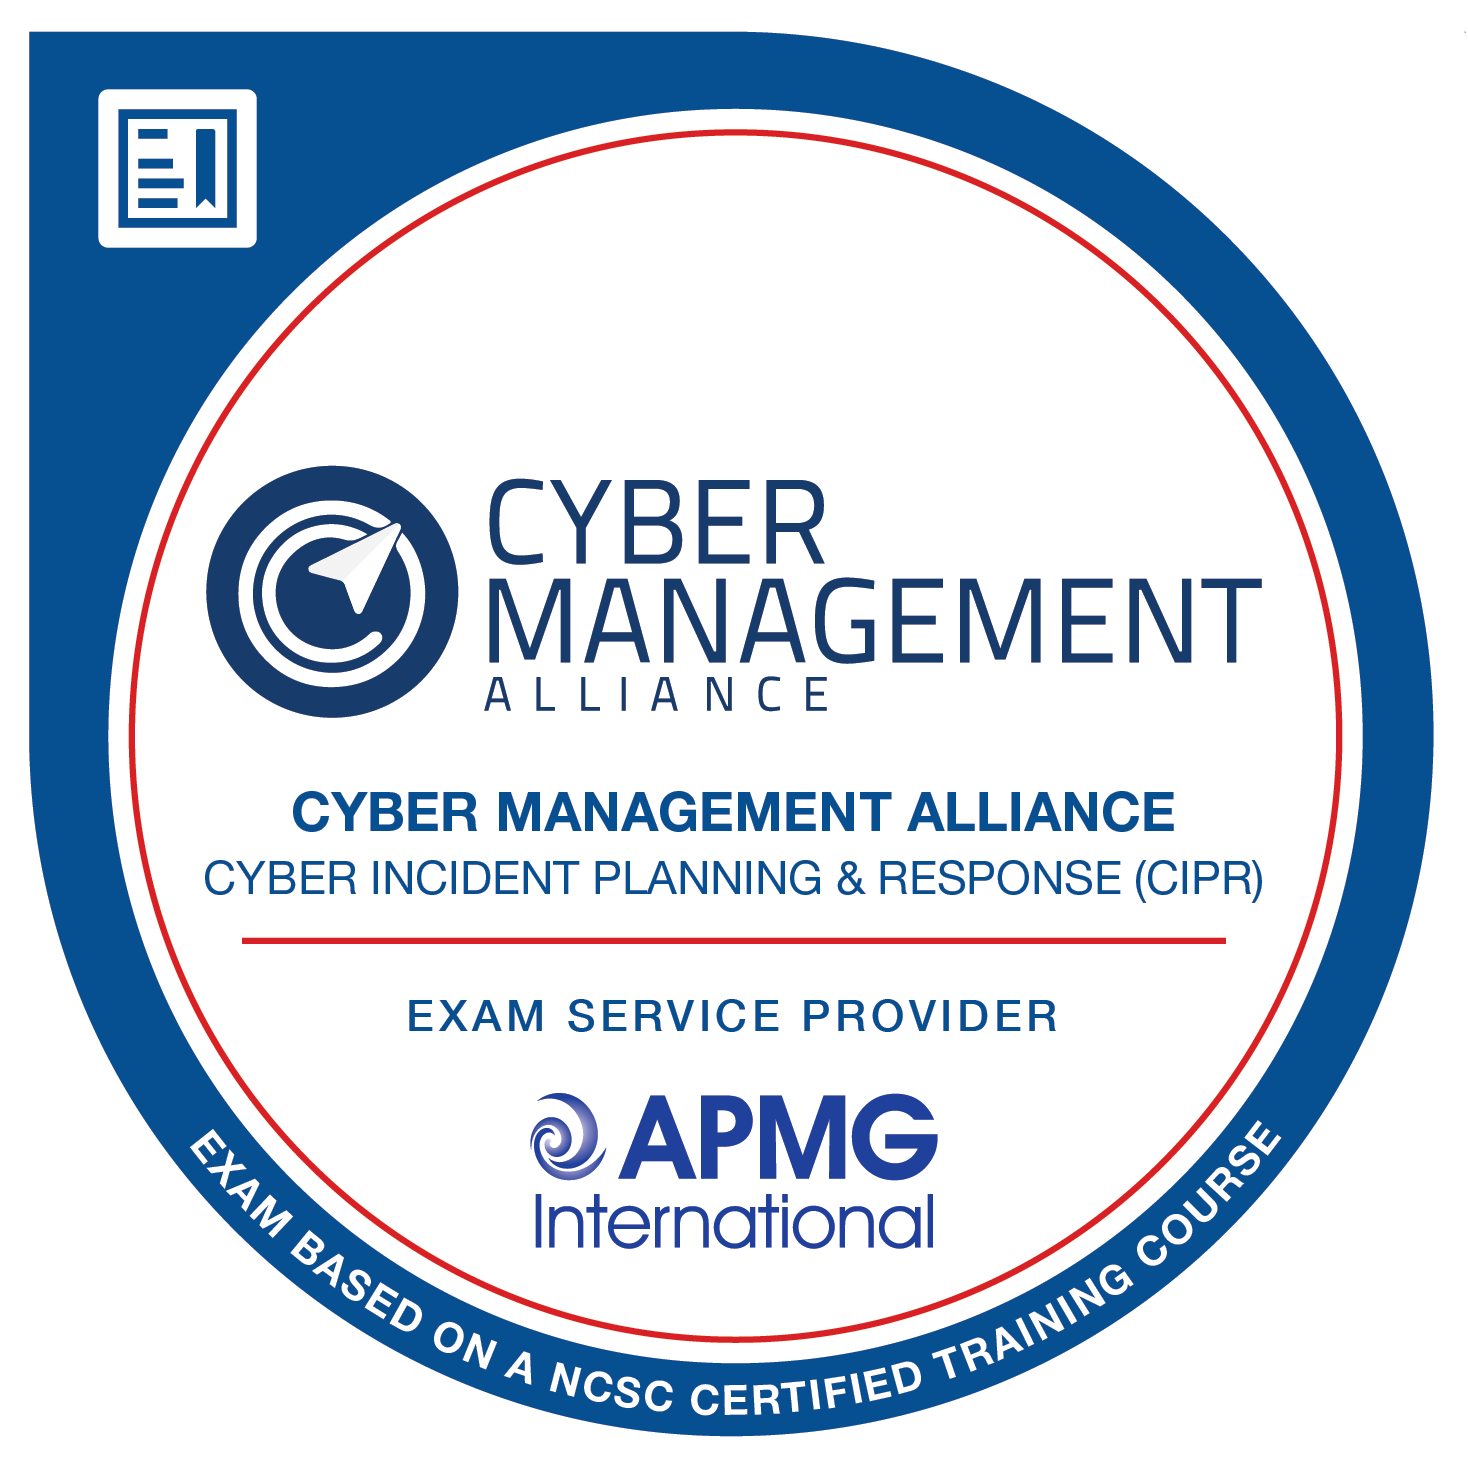 Cyber Management Alliance - Cyber Incident Planning & Response (CIPR)